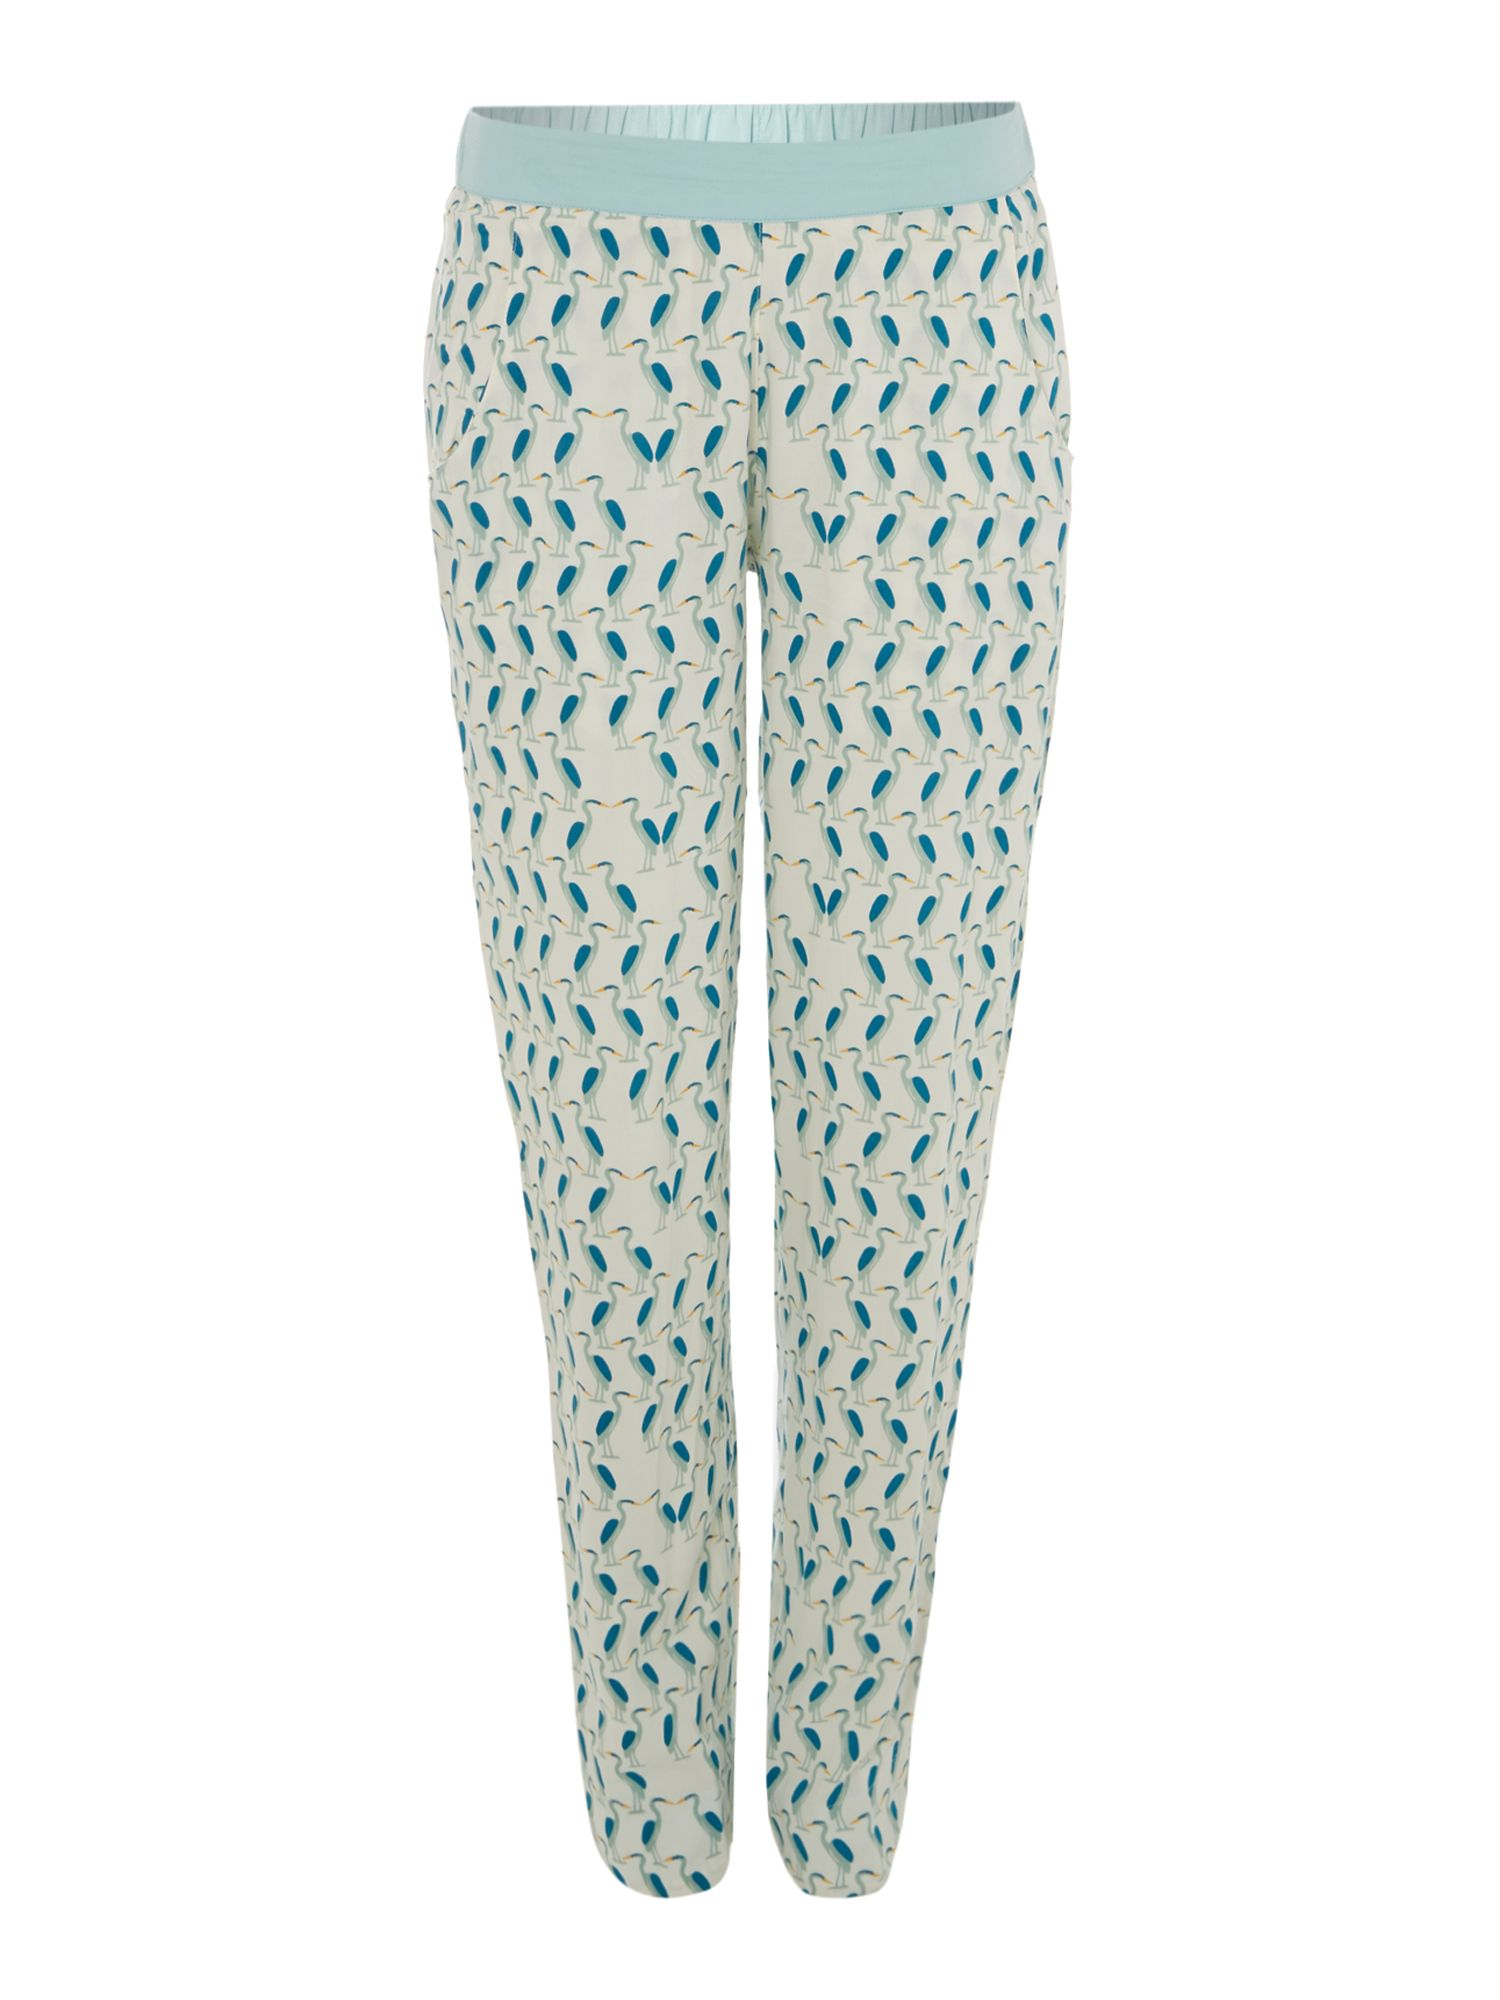 Sienna mirror bird print pj trouser